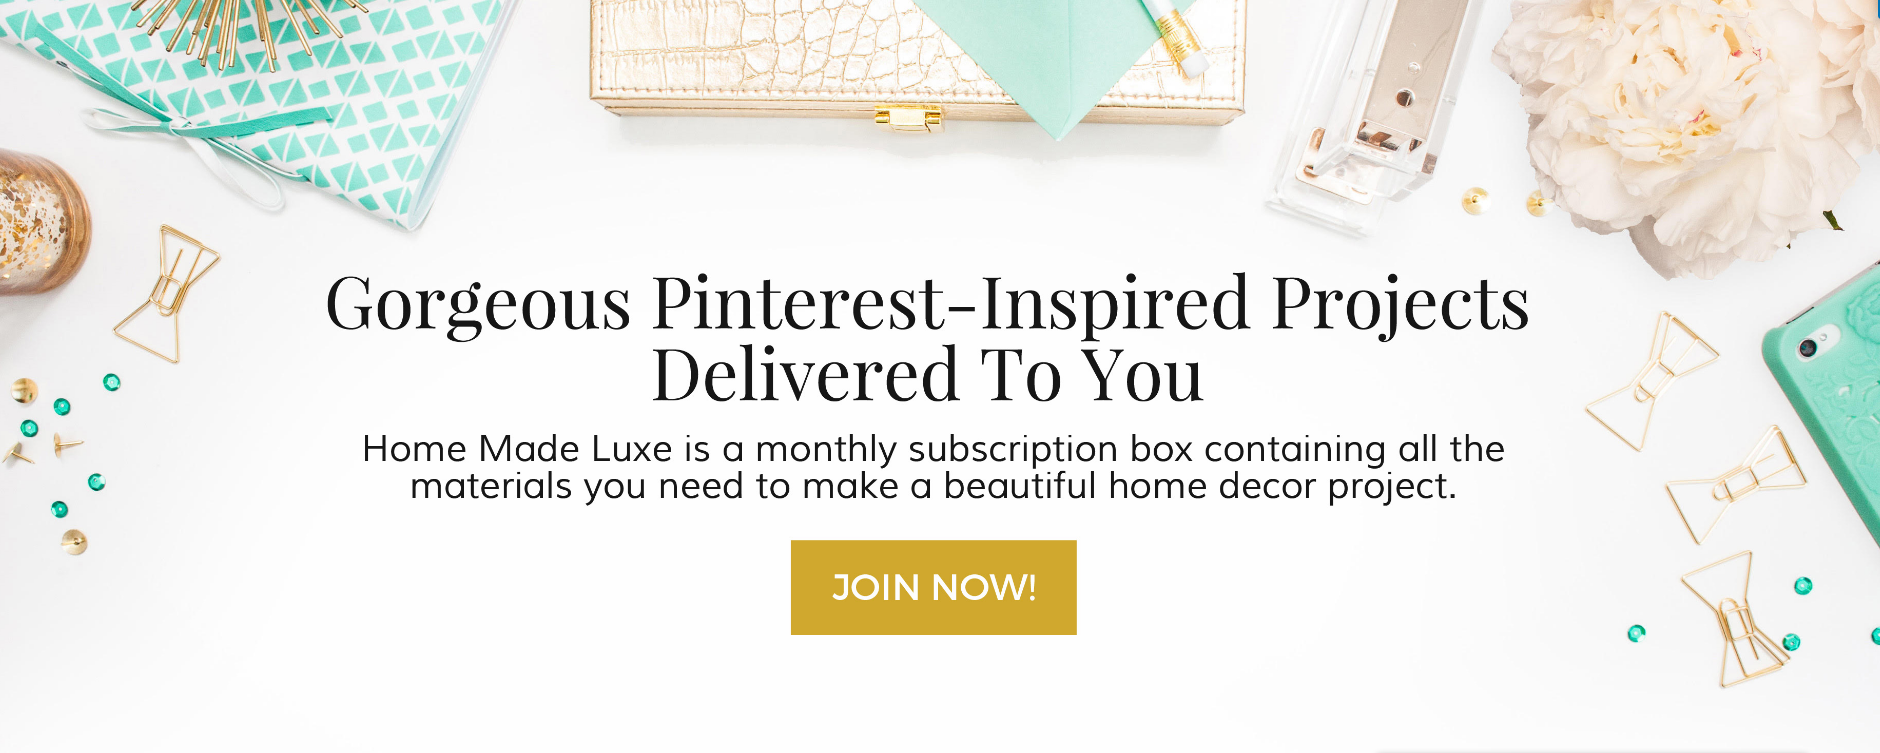 Home Made Luxe January 2018 Spoilers + $10 Off Coupon!